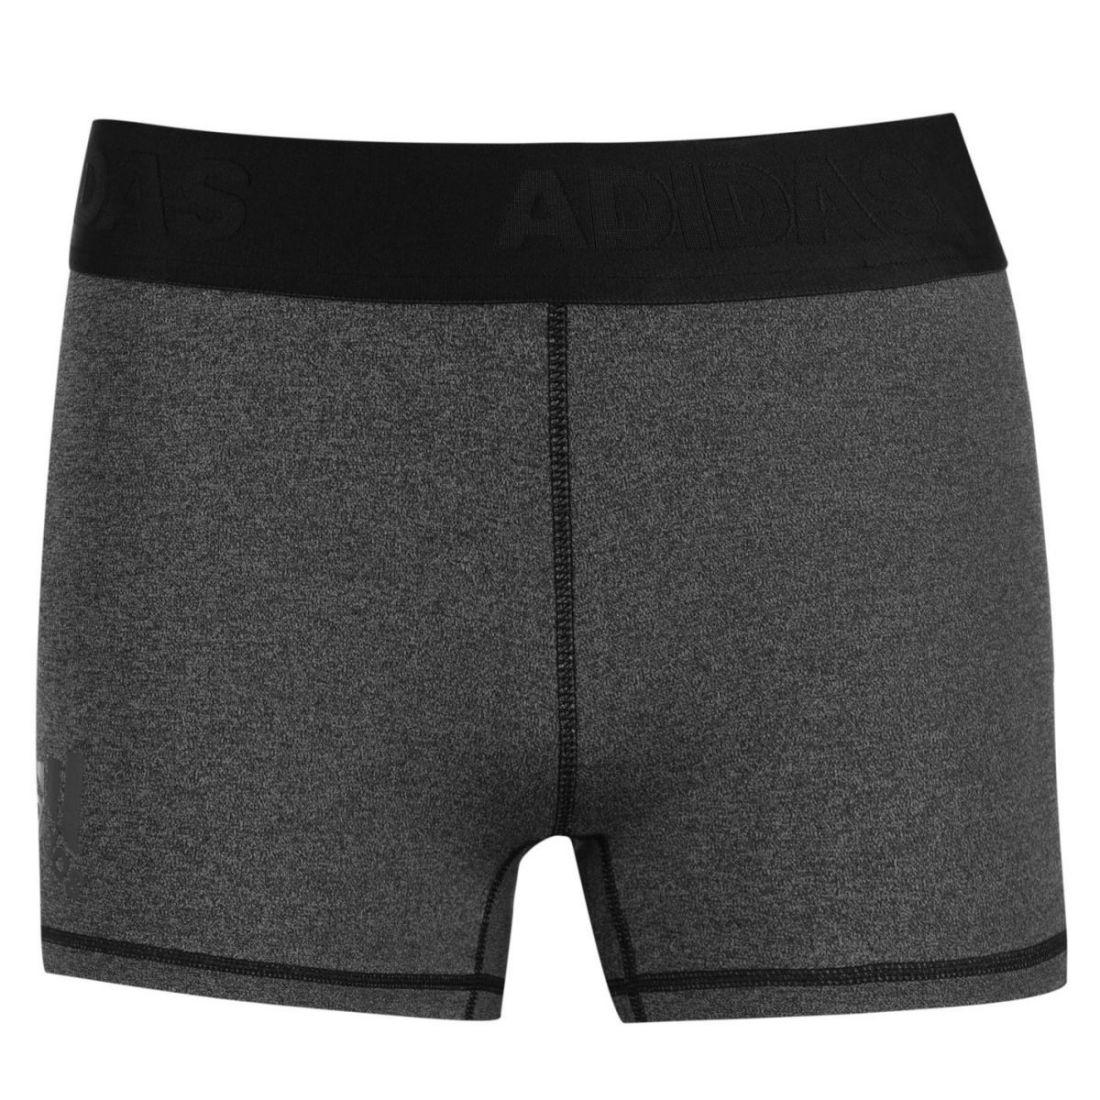 7a128210874fc5 These adidas Alphaskin Shorts are crafted with an elasticated waistband and  are a lightweight construction.